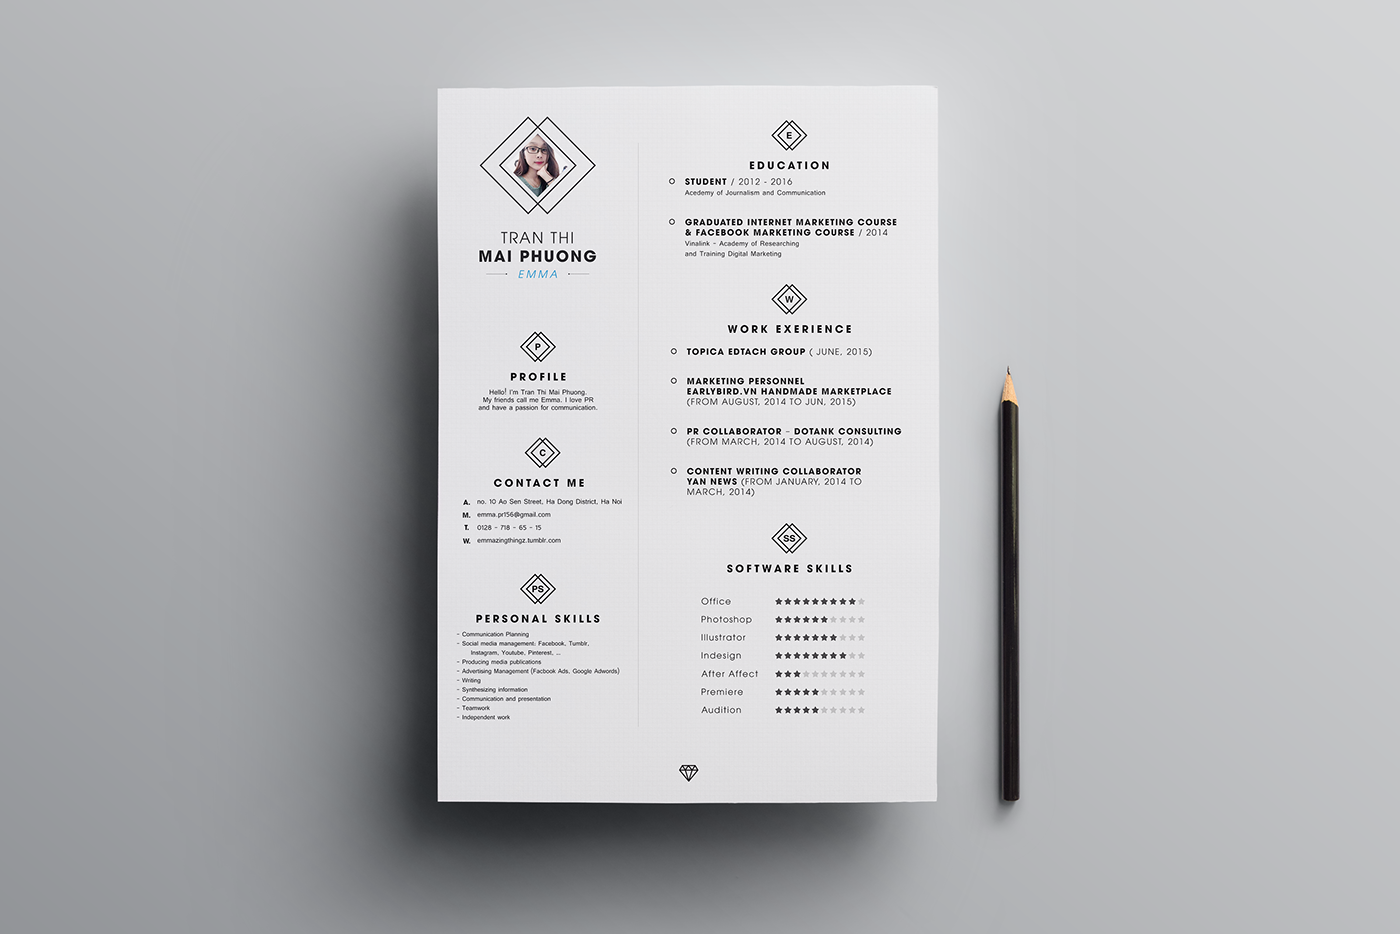 FREE Resume Template, Awesome Resume Design